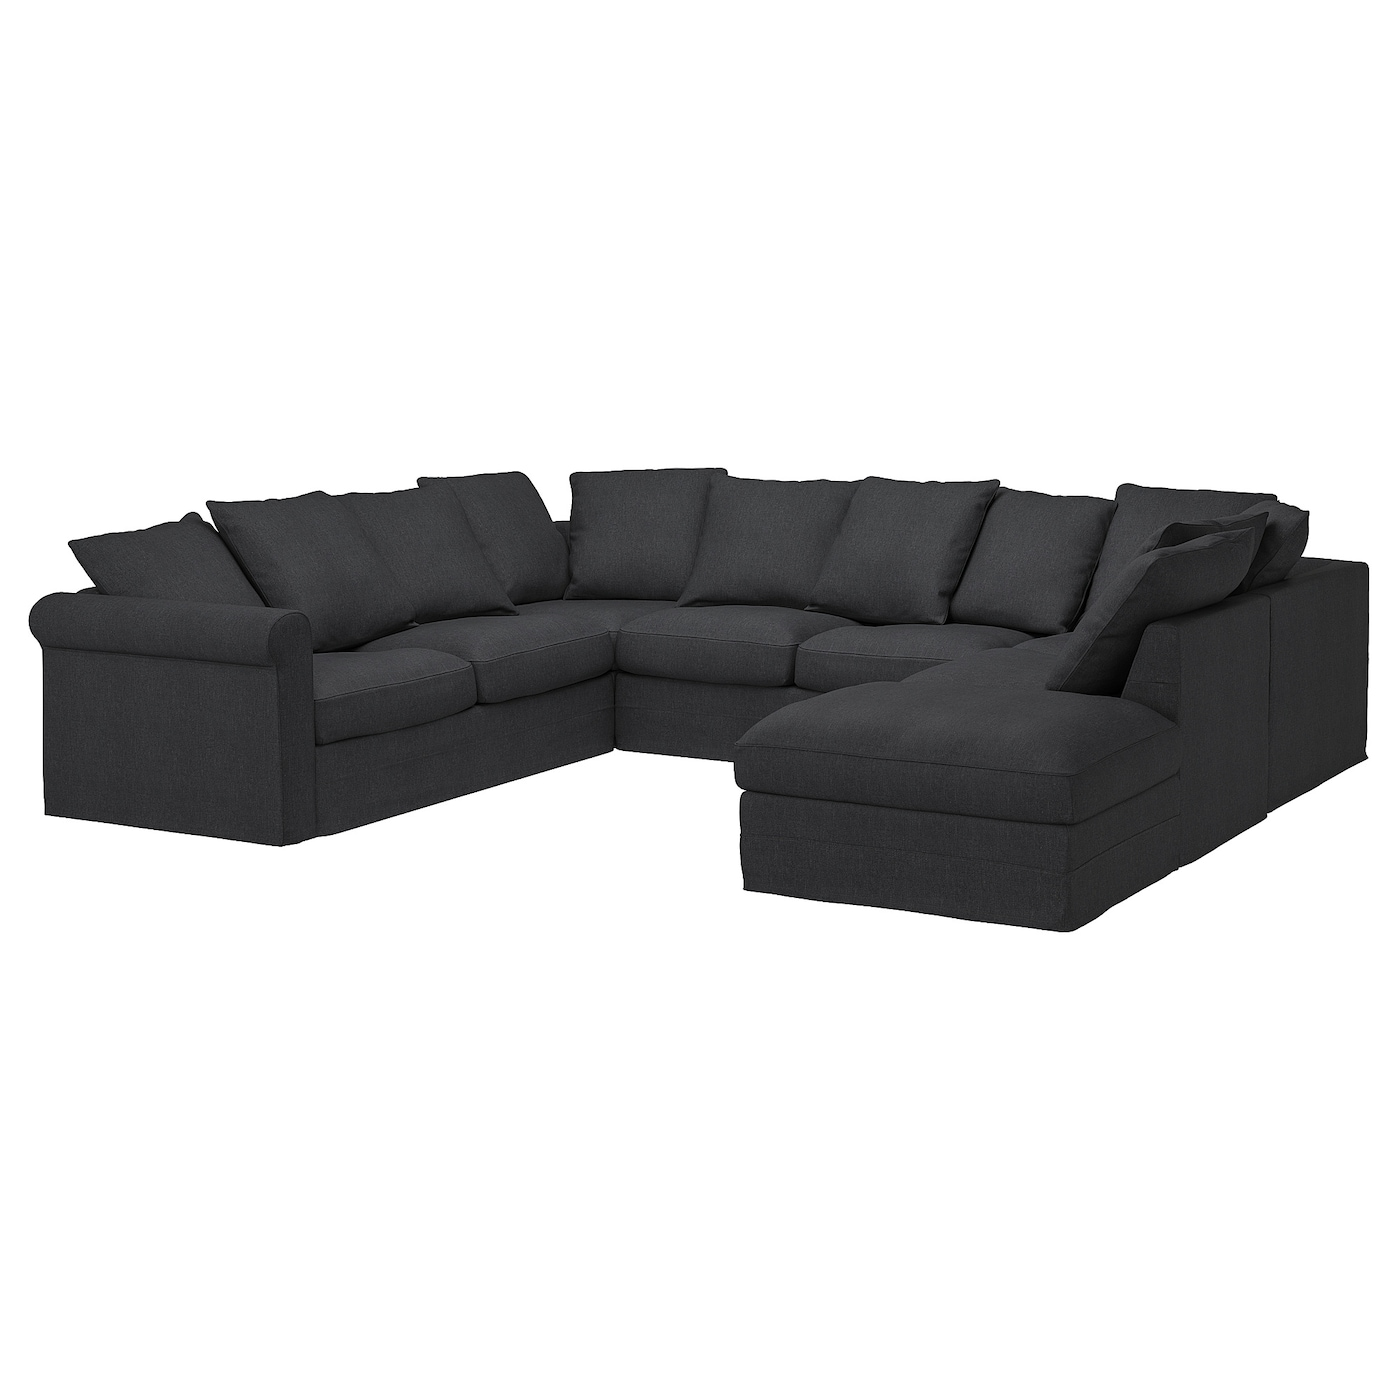 Picture of: Gronlid U Shaped Sofa 6 Seat With Open End Sporda Dark Grey Ikea